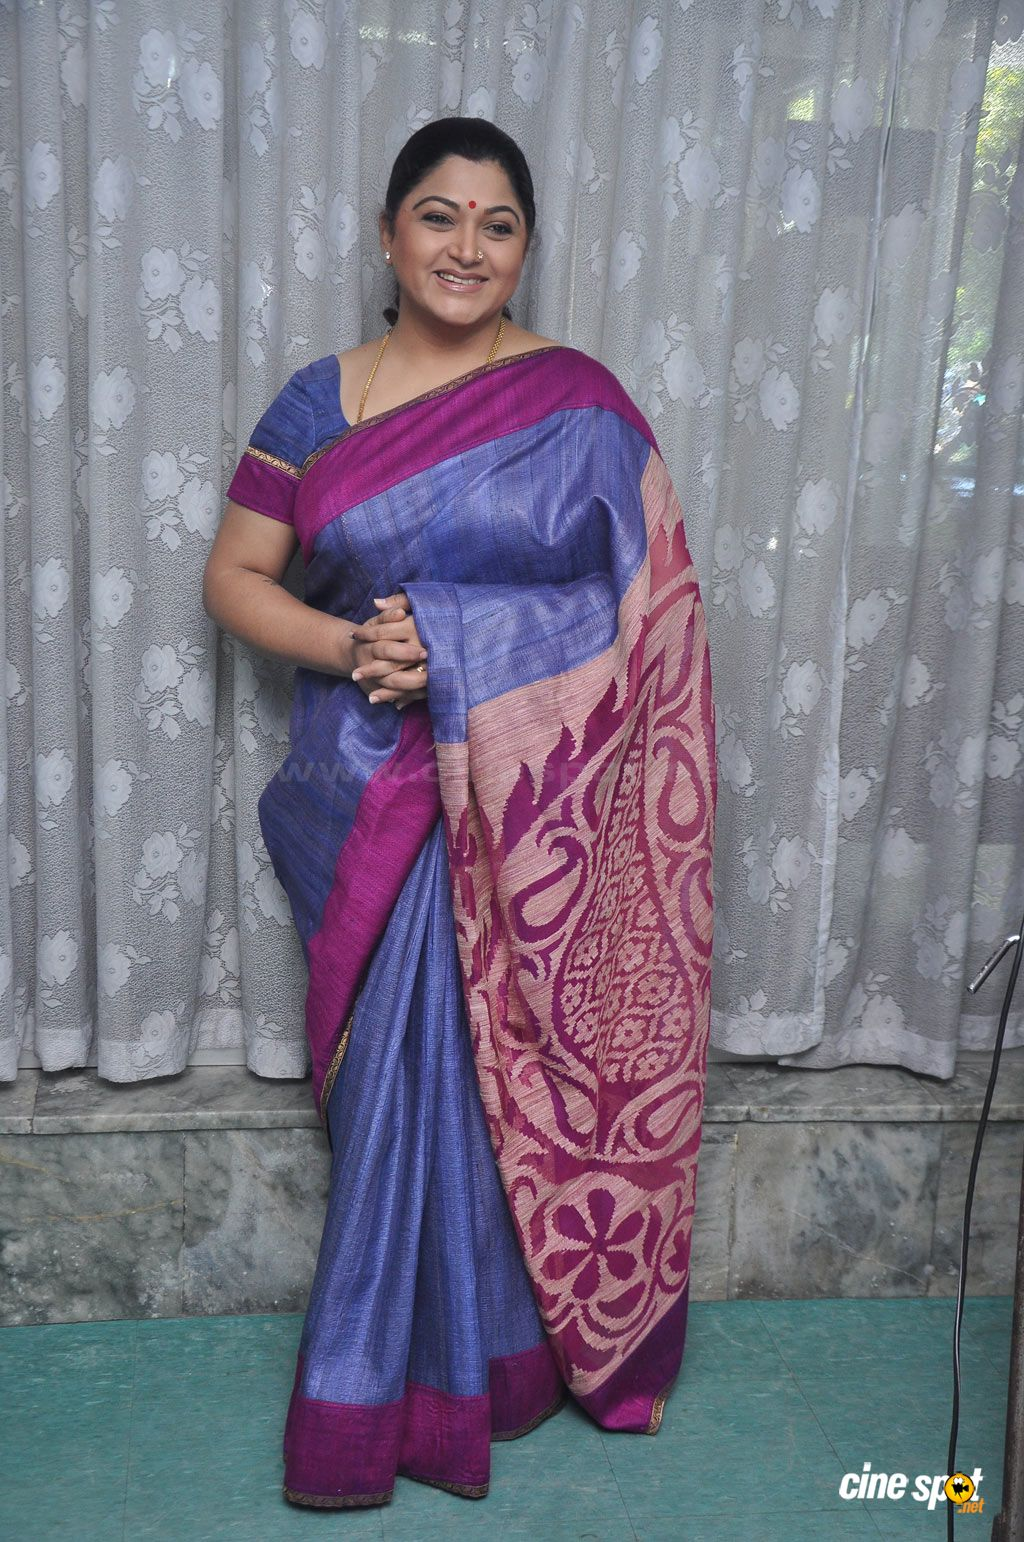 kushboo actress